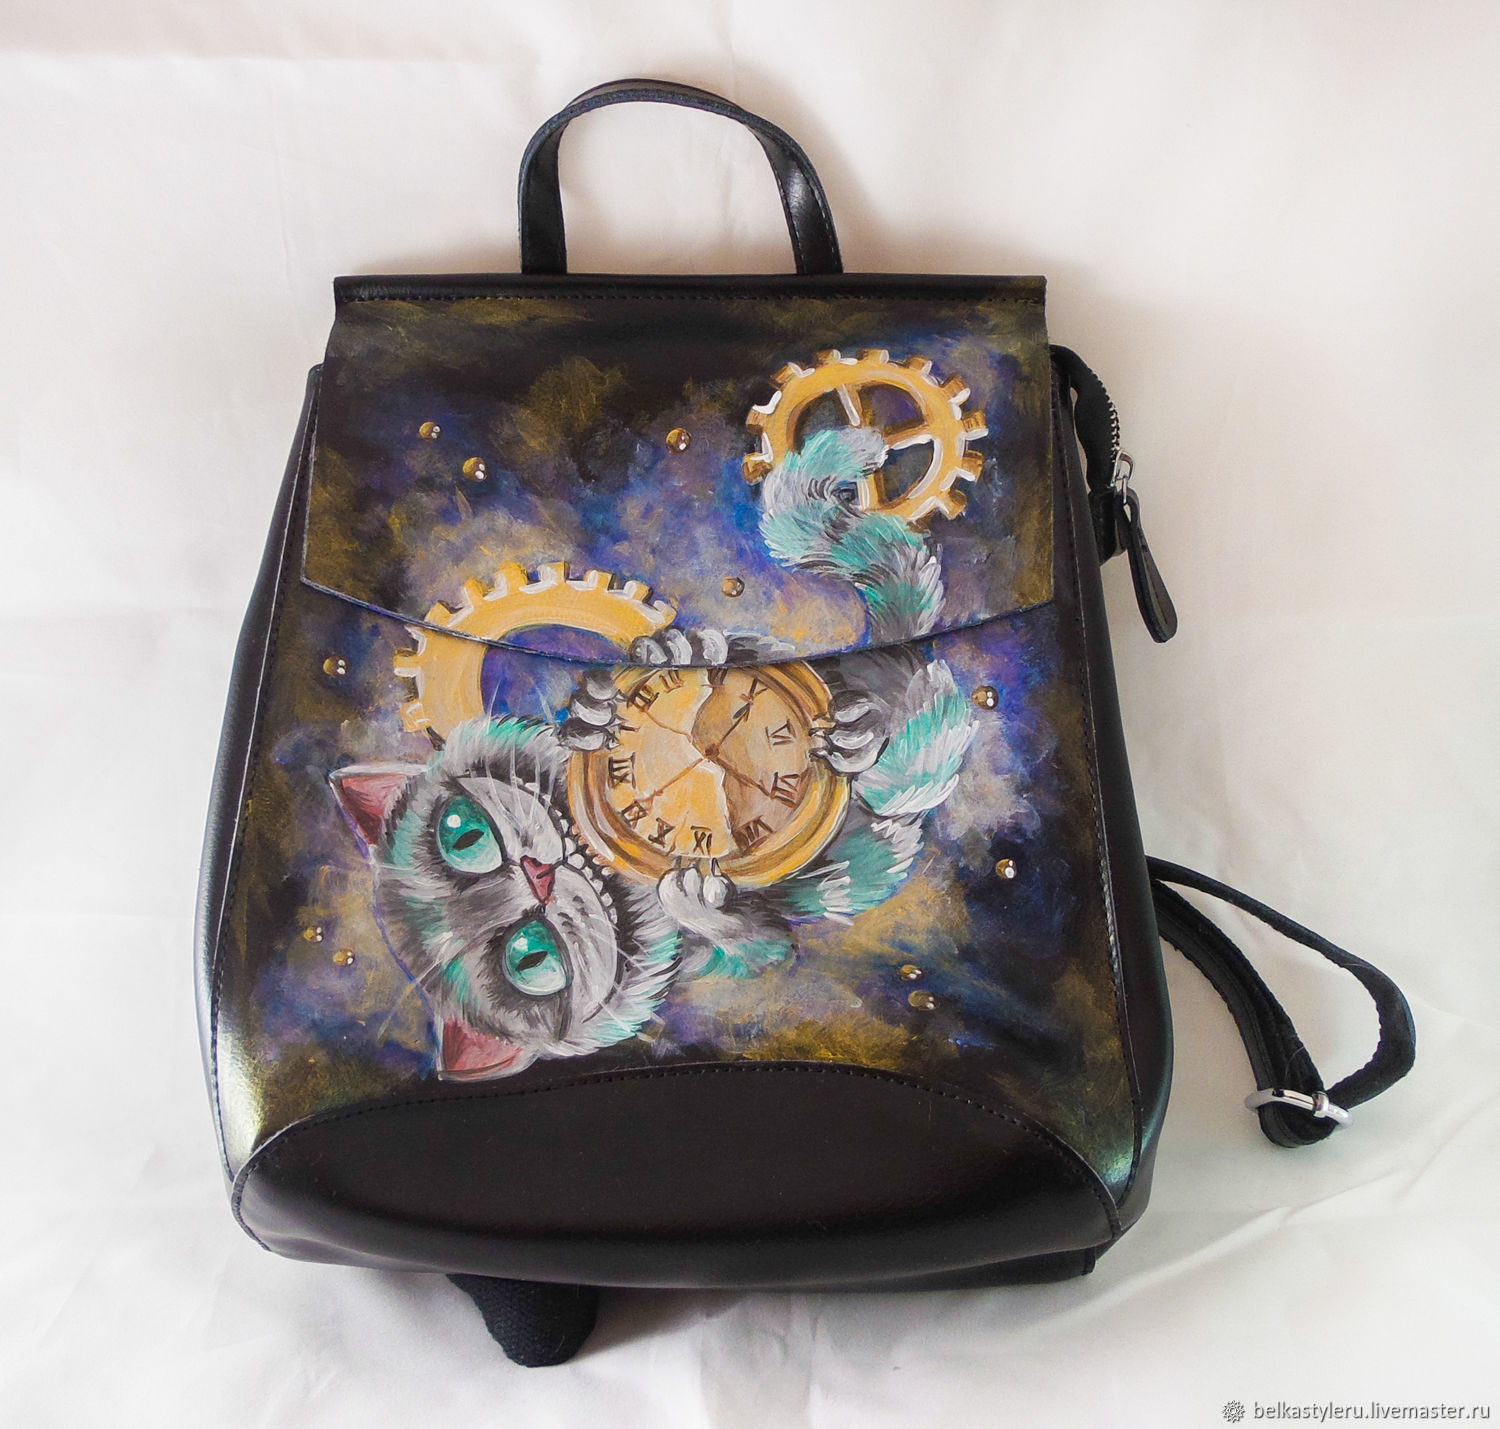 386a7dba96 Backpacks handmade livemaster handmade buy leather backpack handmade  cheshire cat backpack jpg 1500x1429 Cheshire cat backpack